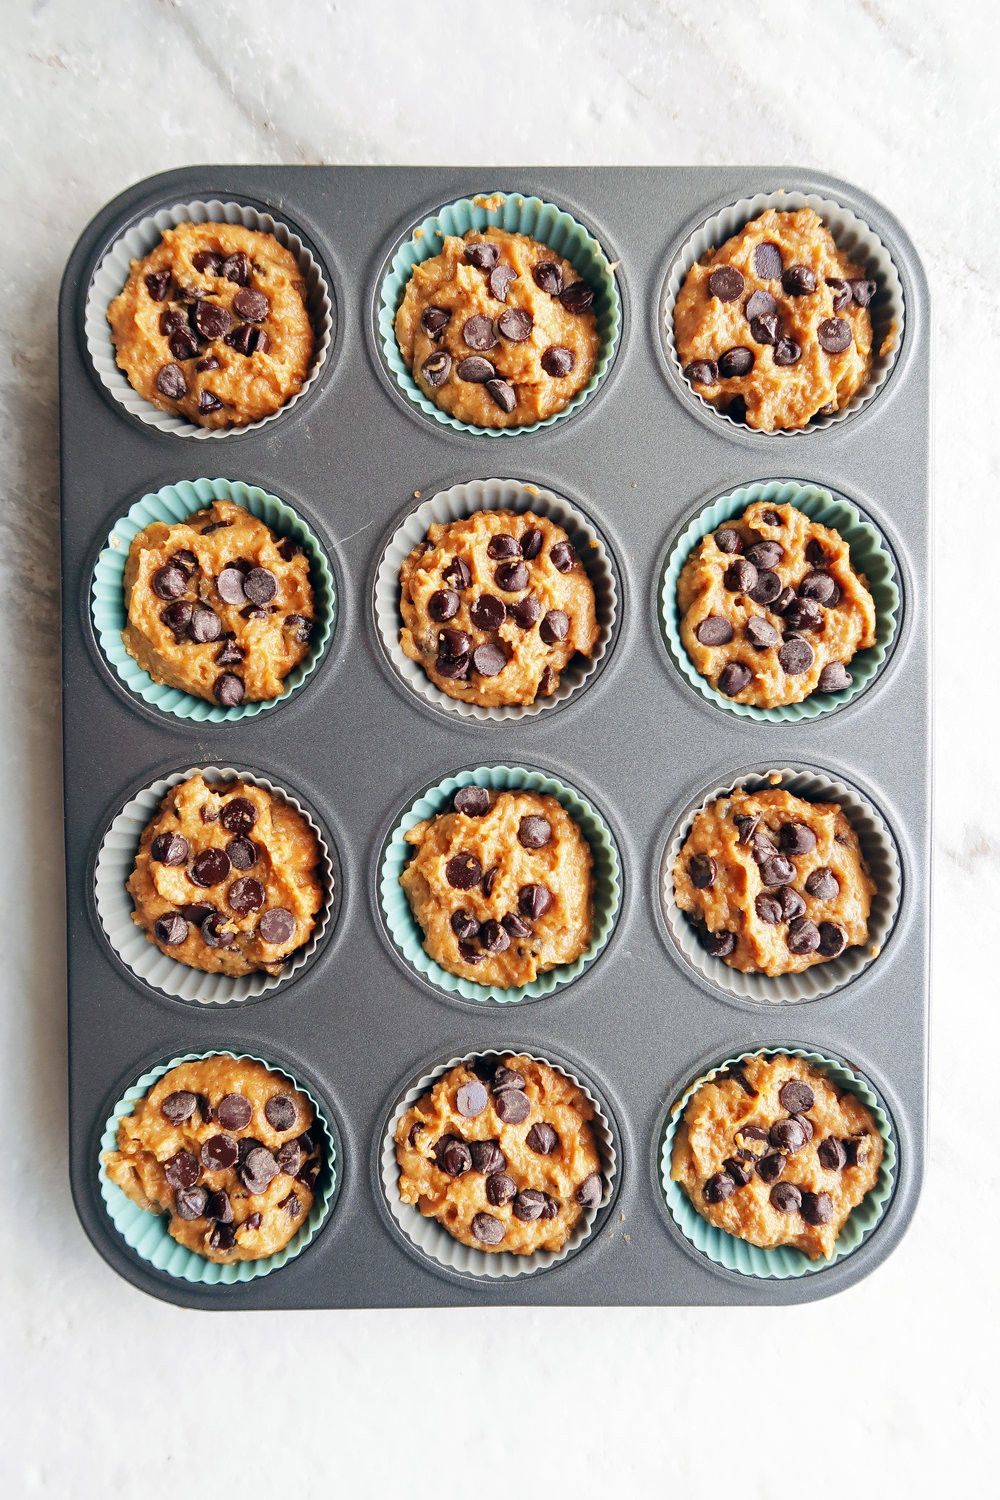 Pumpkin chocolate chip whole wheat muffin batter scooped evenly into a 12 cup muffin pan.